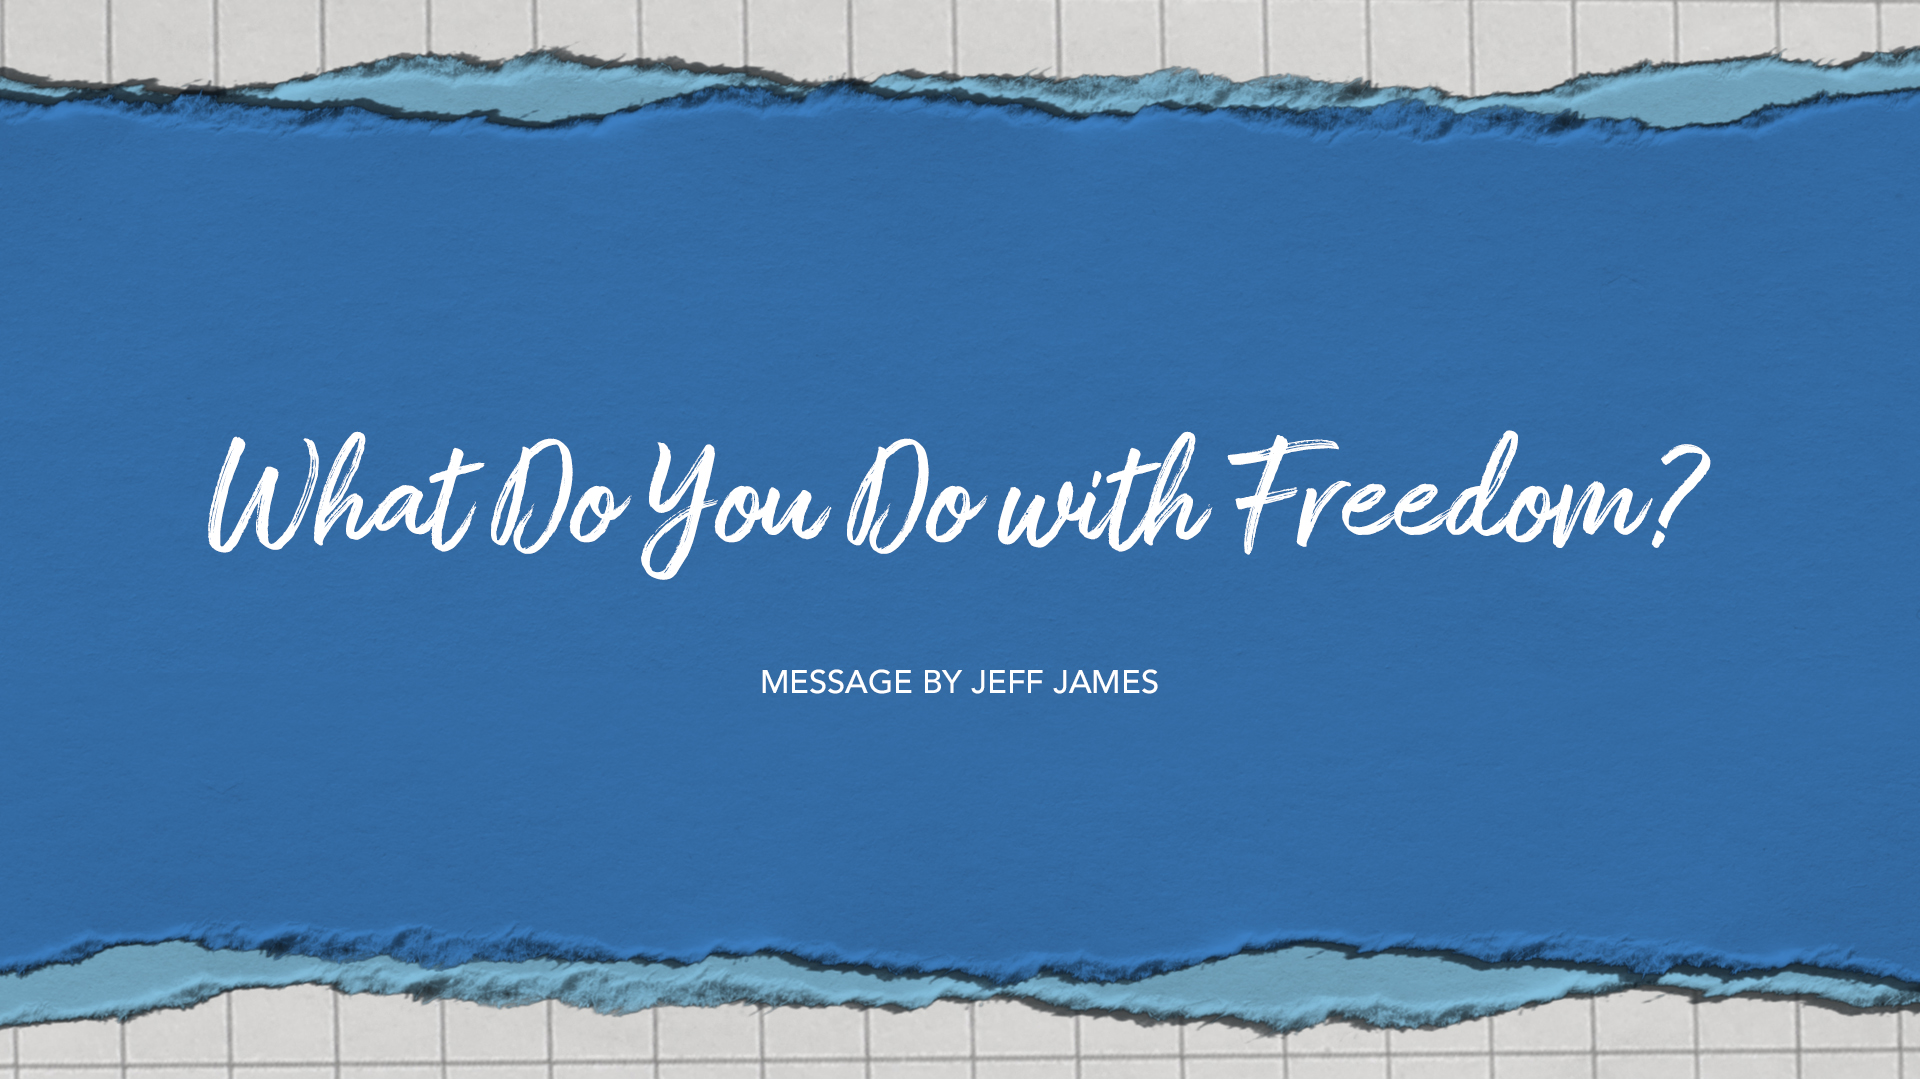 What Do You Do with Freedom?